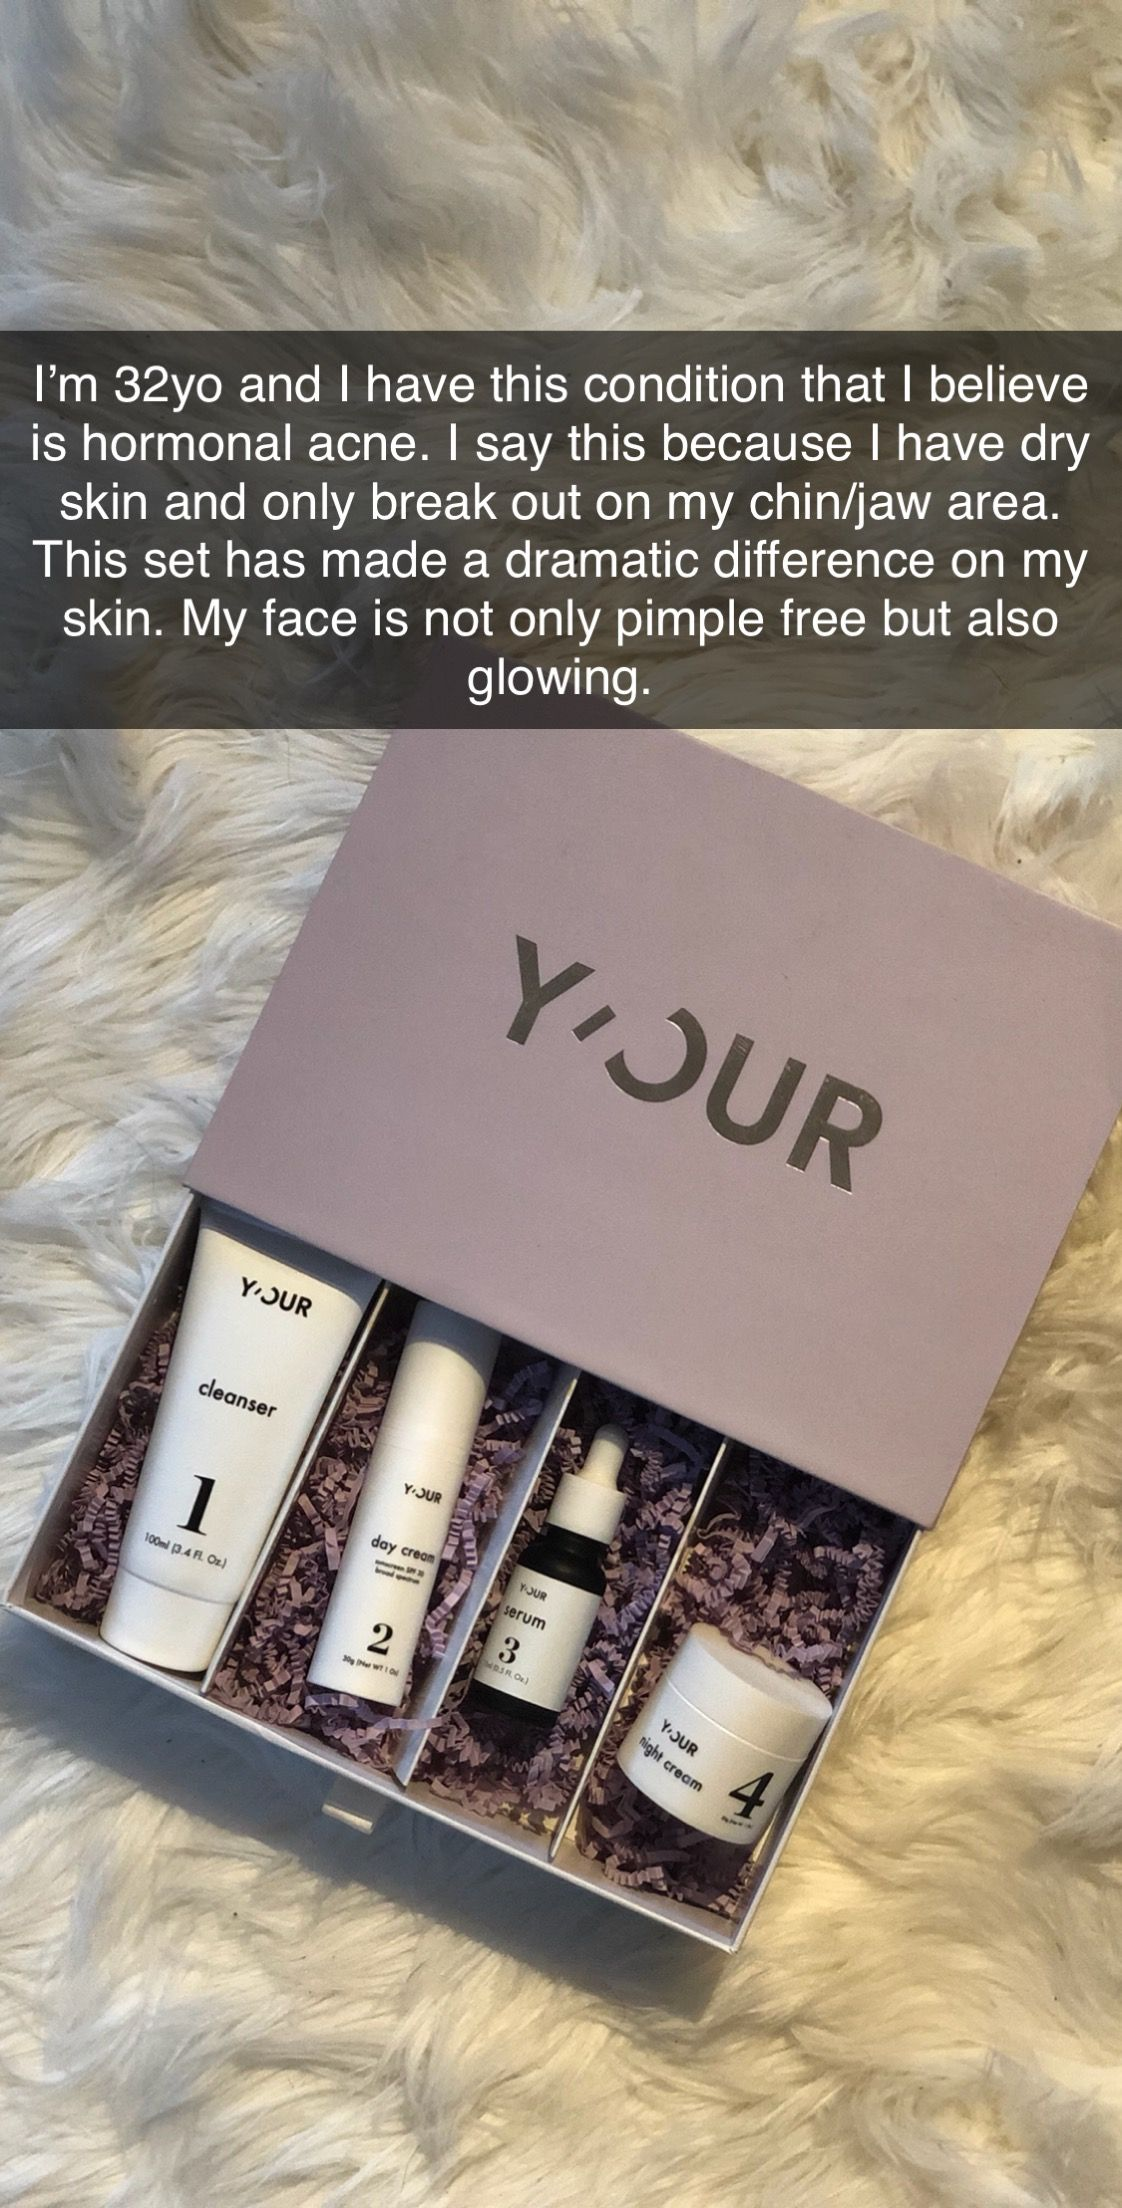 Personalized Skin Care For Hormonal Acne Chin Acne Cystic Acne Hormonal Acne Cystic Acne Acne Treatment